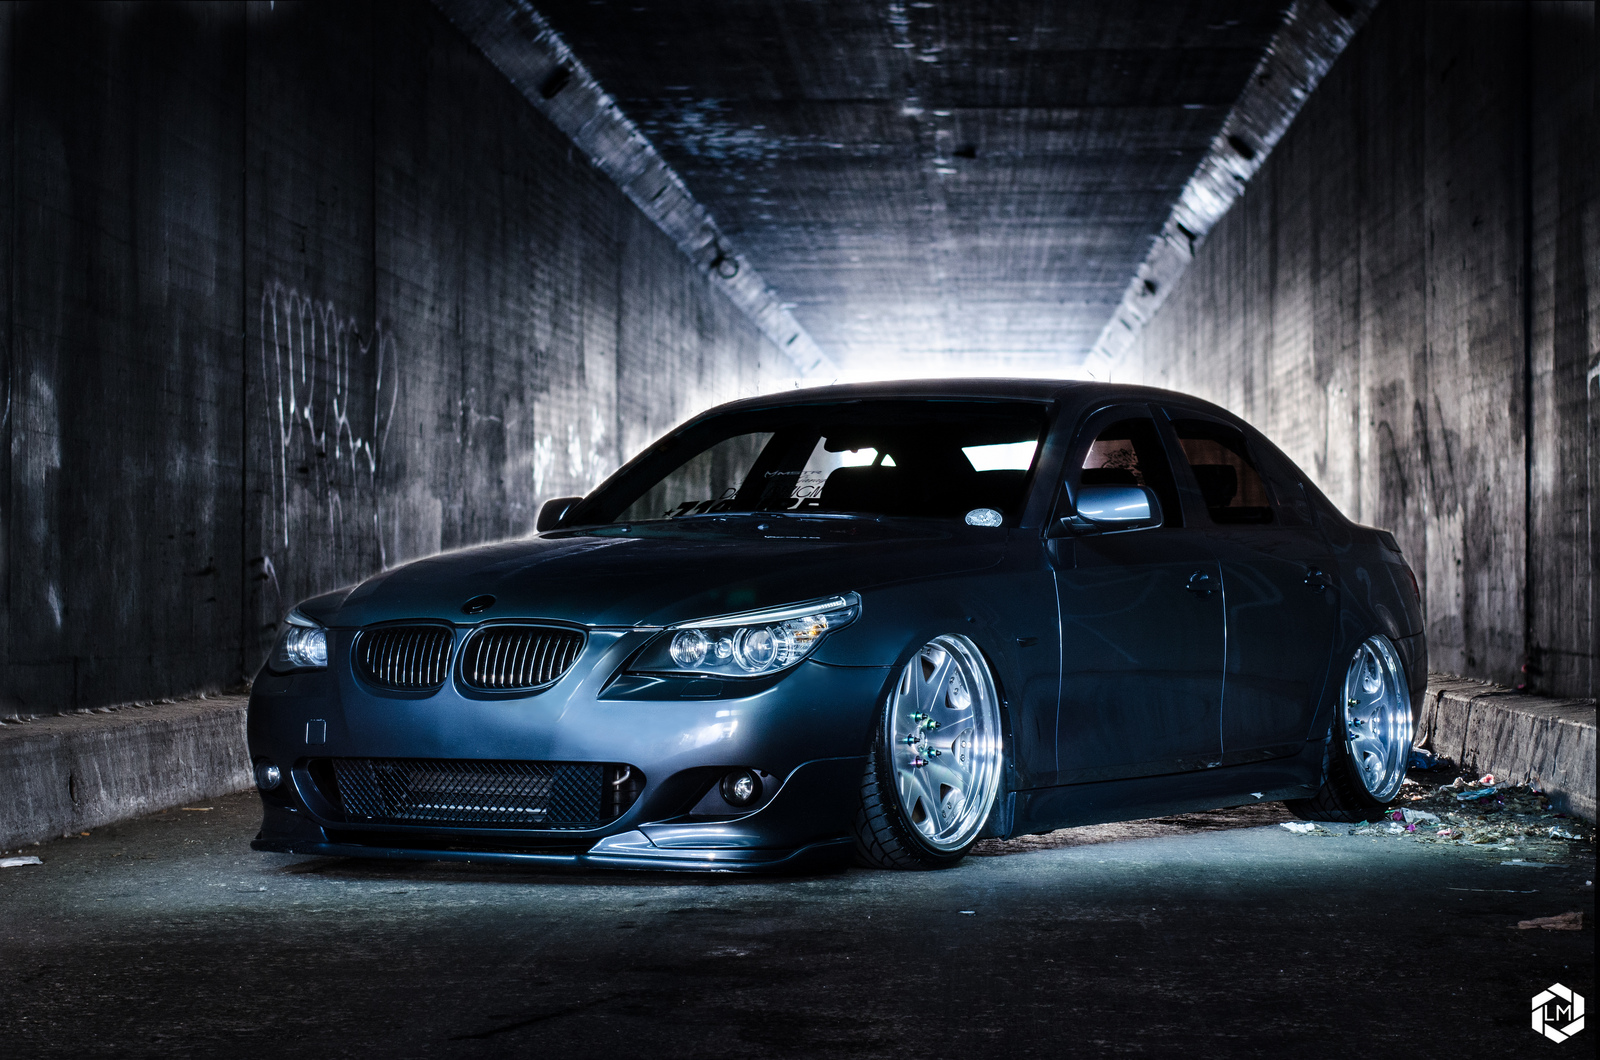 bmw e60 tuning 8 tuning. Black Bedroom Furniture Sets. Home Design Ideas